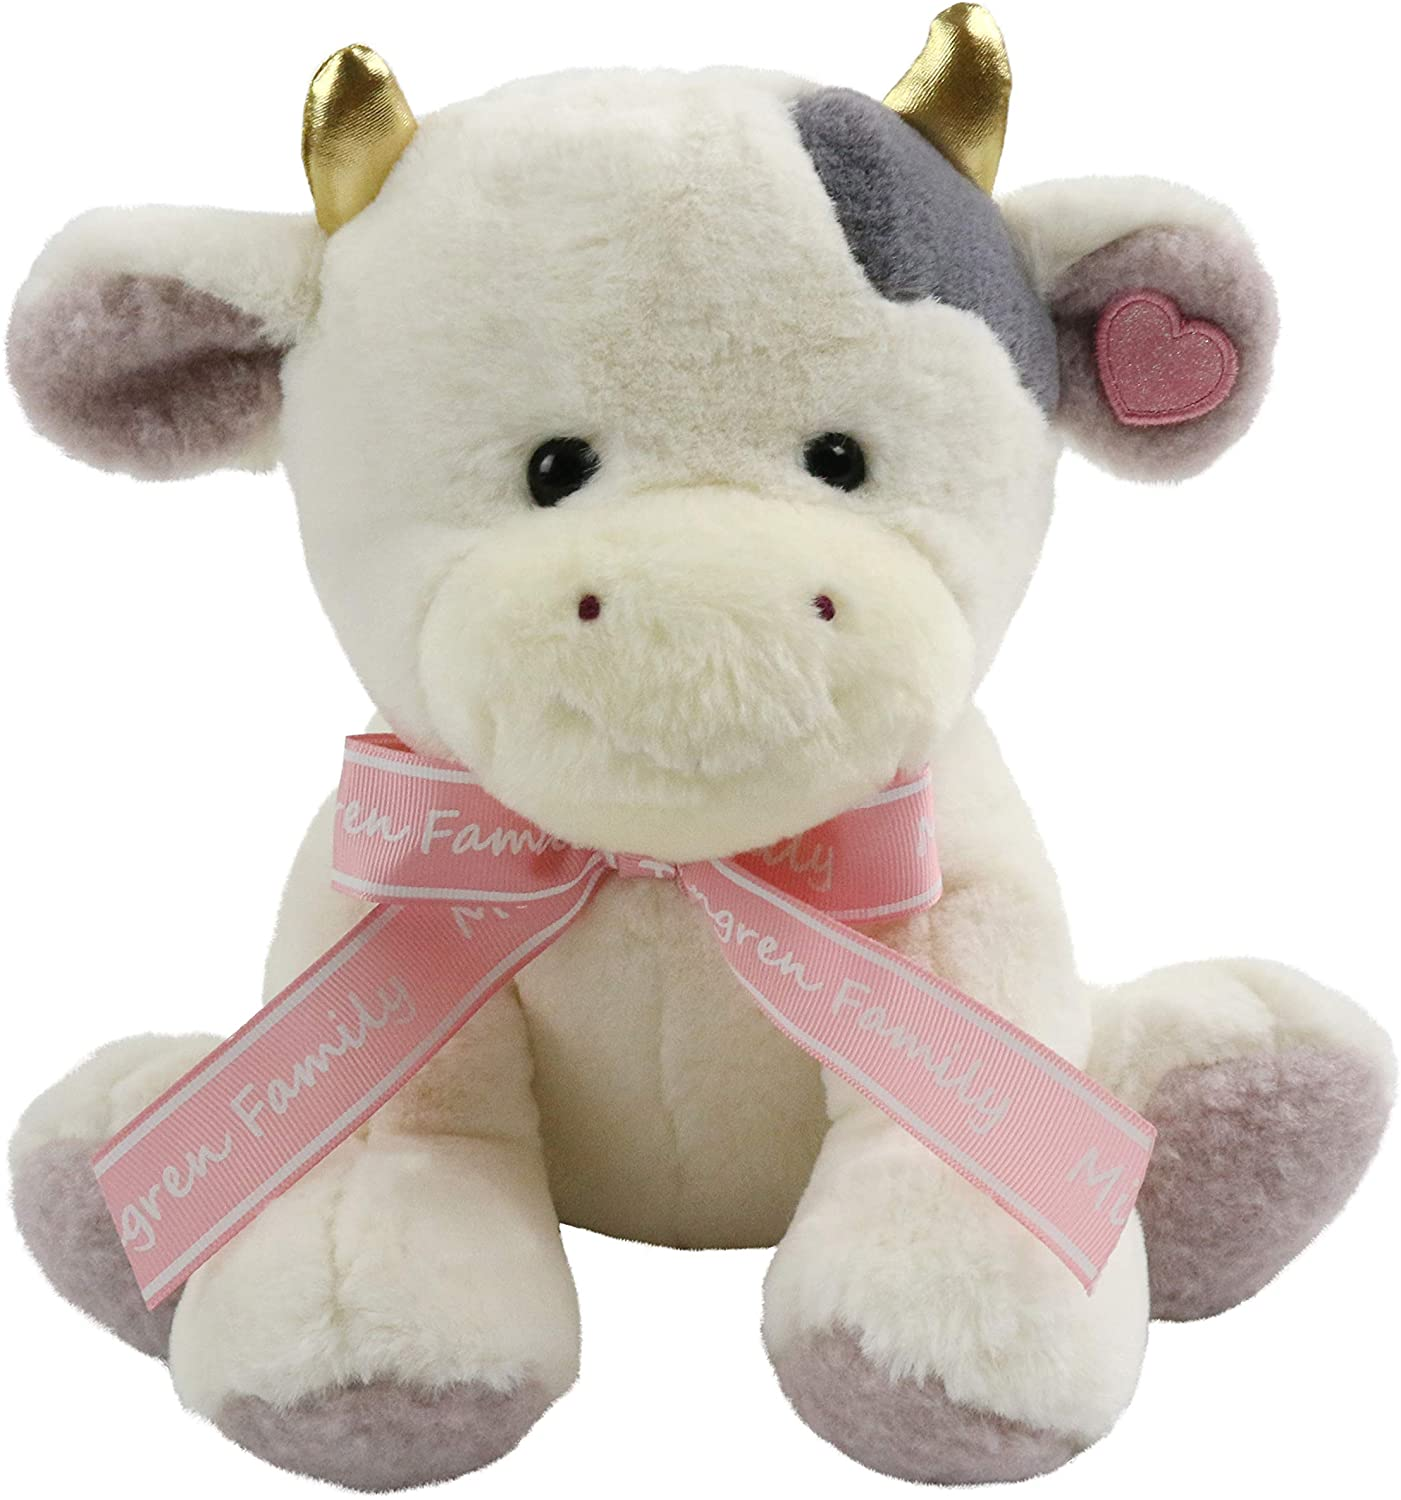 SpecialYou Plush Cow Stuffed Animals Cuddly Cozy Furry Toys Gift for Toddler Kids on Birthday Christmas Halloween, White, 10 Inches